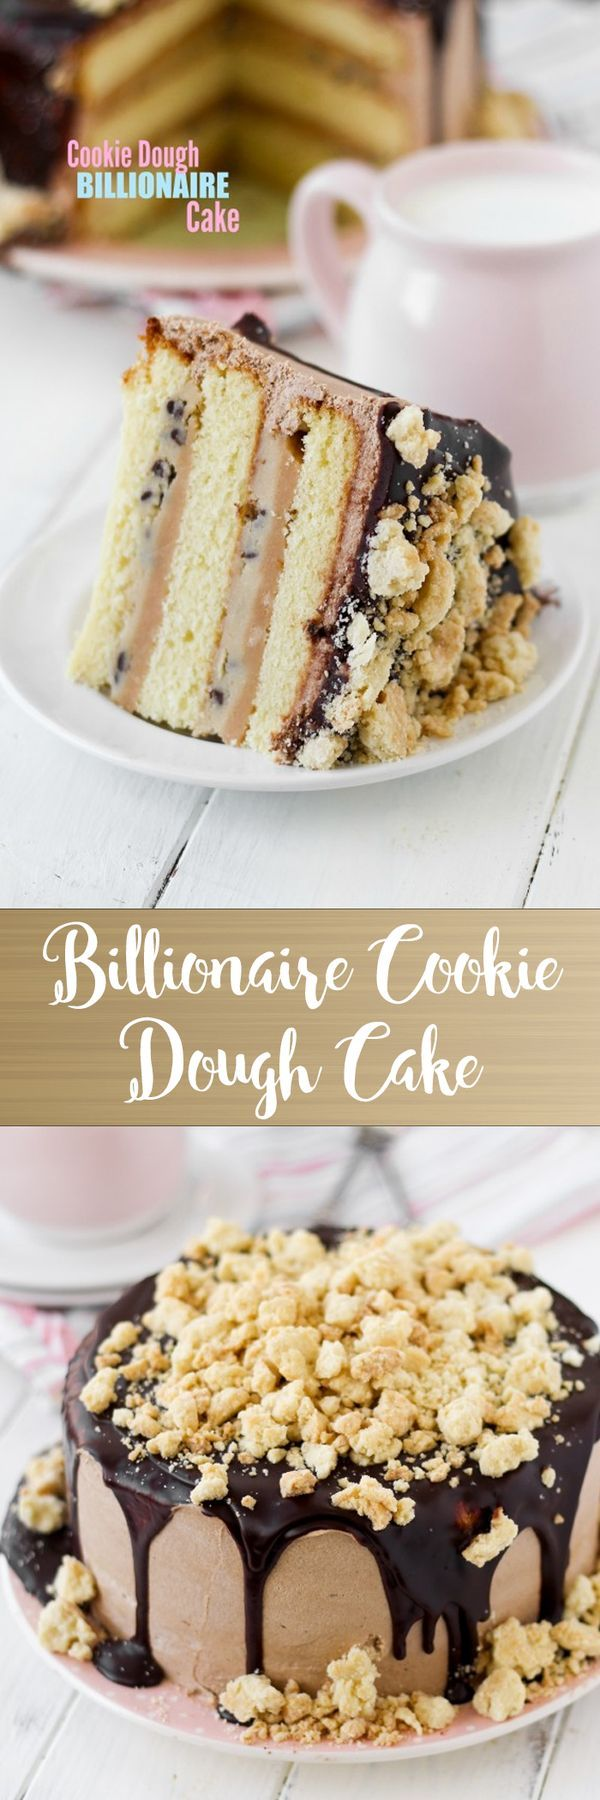 Billionaire Cookie Dough Cake